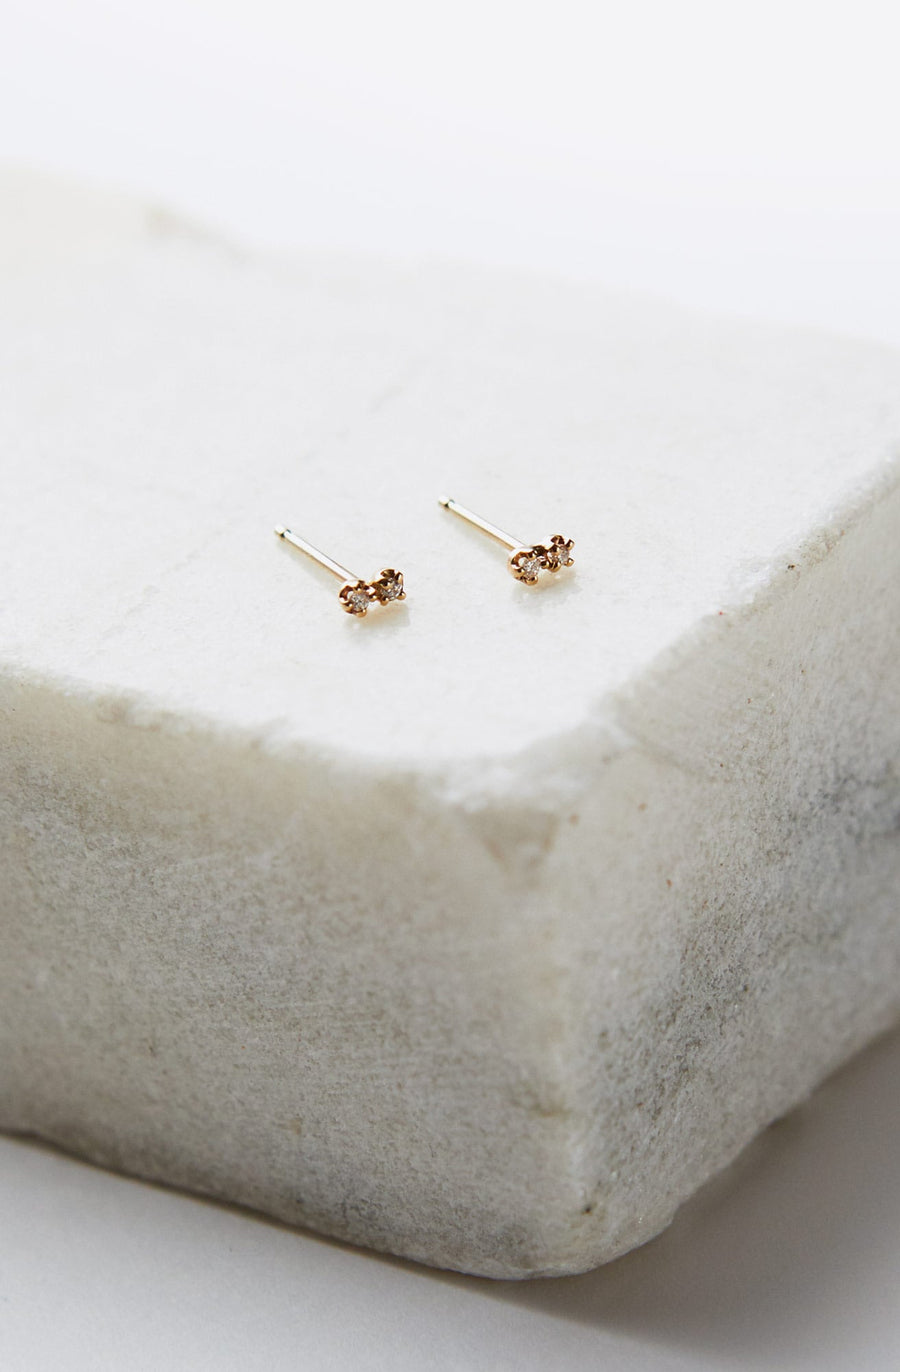 Dimple Earrings-10k yellow gold